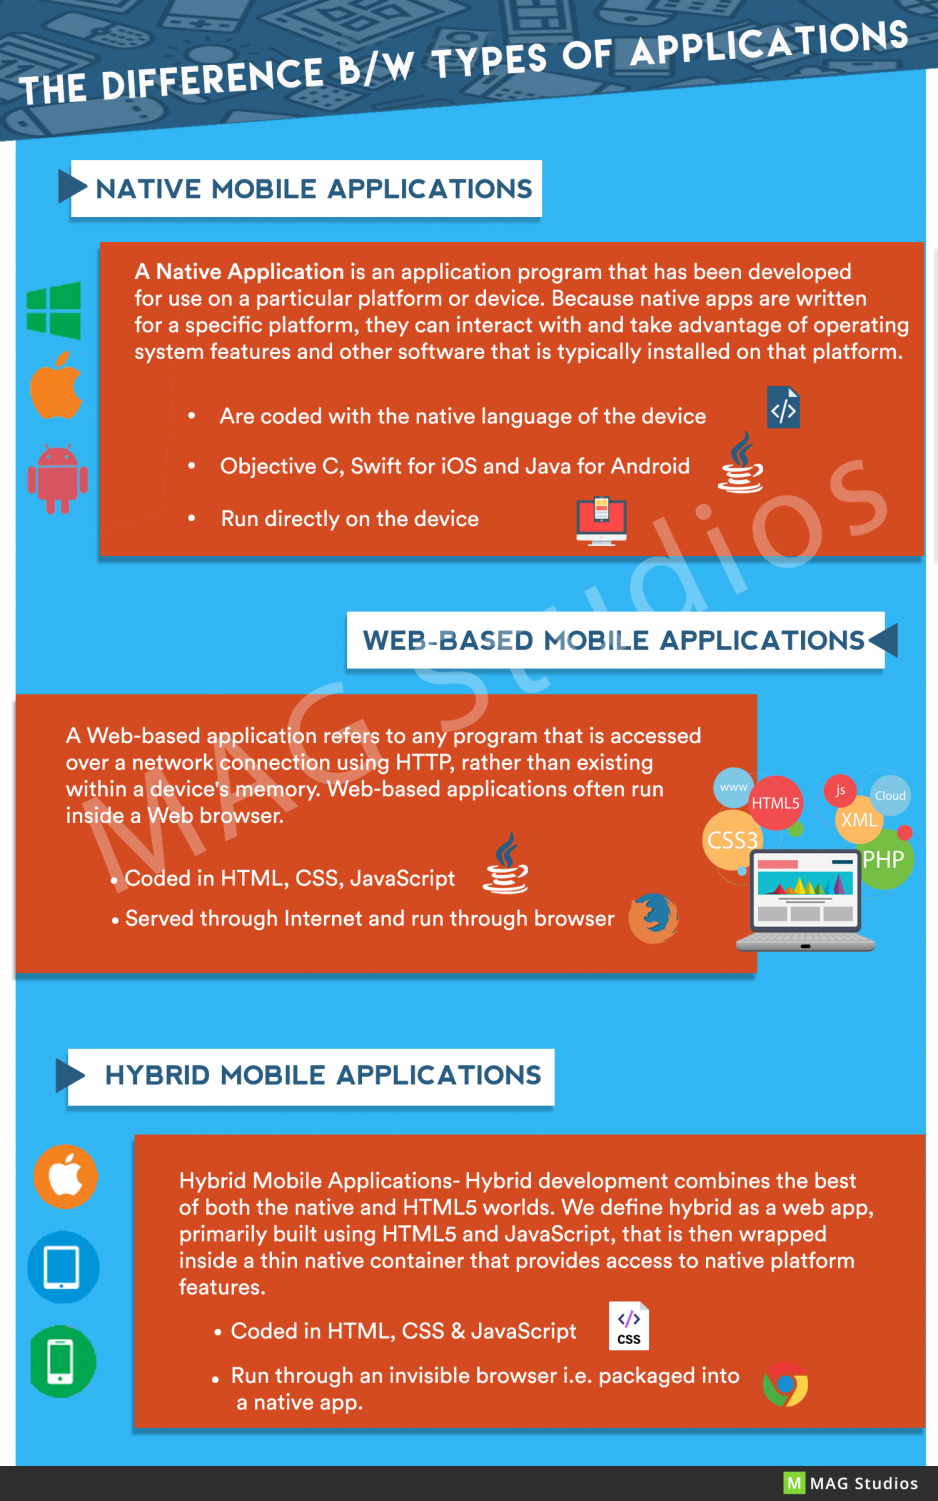 The difference between the types of Mobile Applications